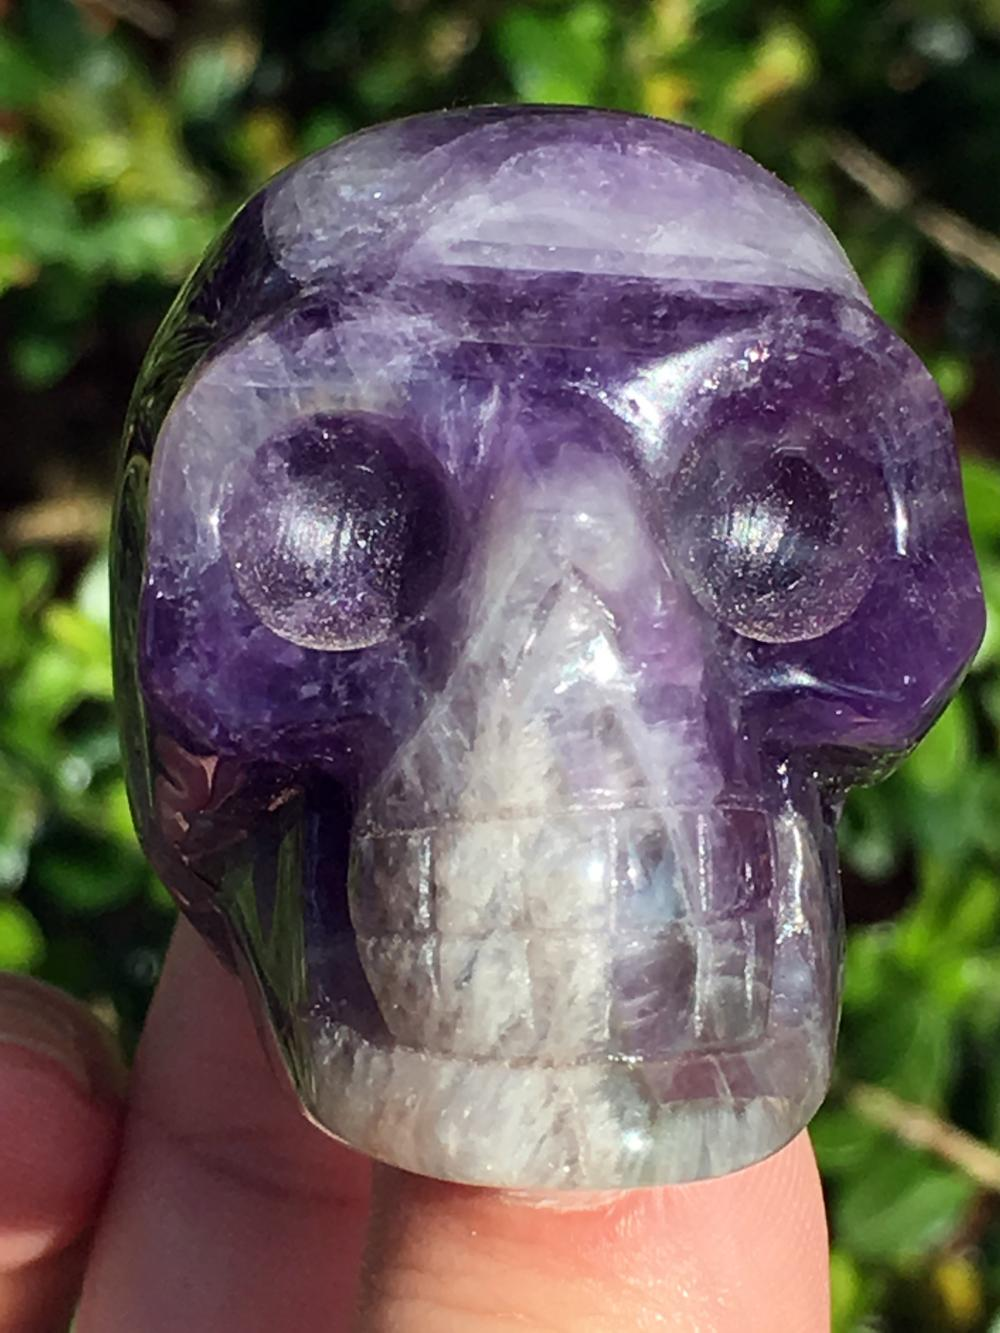 Lot 66: Amethyst, Rock, Crystal, Natural, Collectible, Carving, Skull